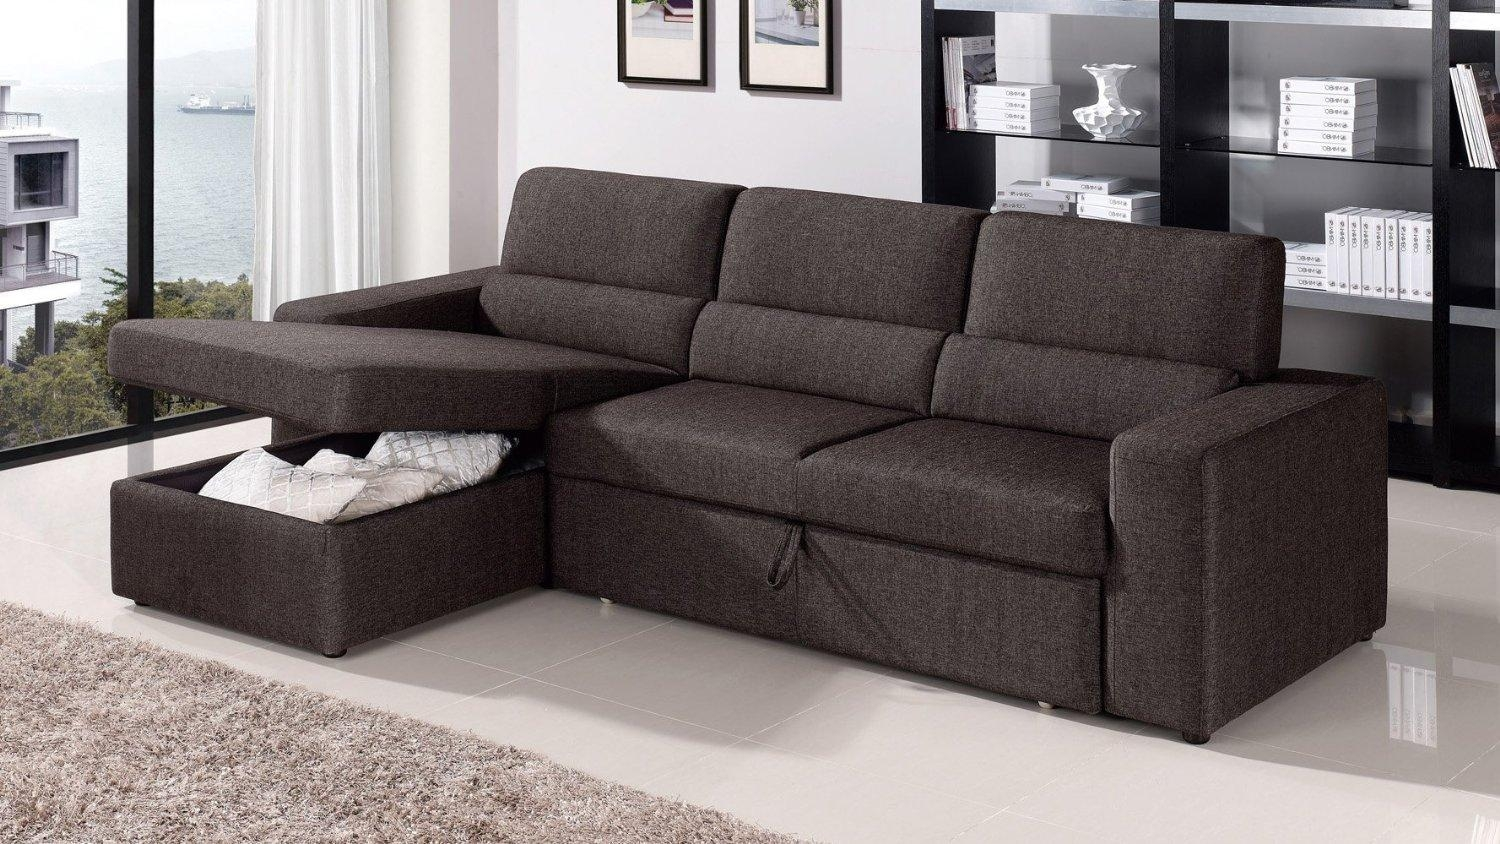 Unique Sectional Sofa With Sleeper And Chaise 69 On Full Sleeper with Sectional Sofas With Sleeper And Chaise